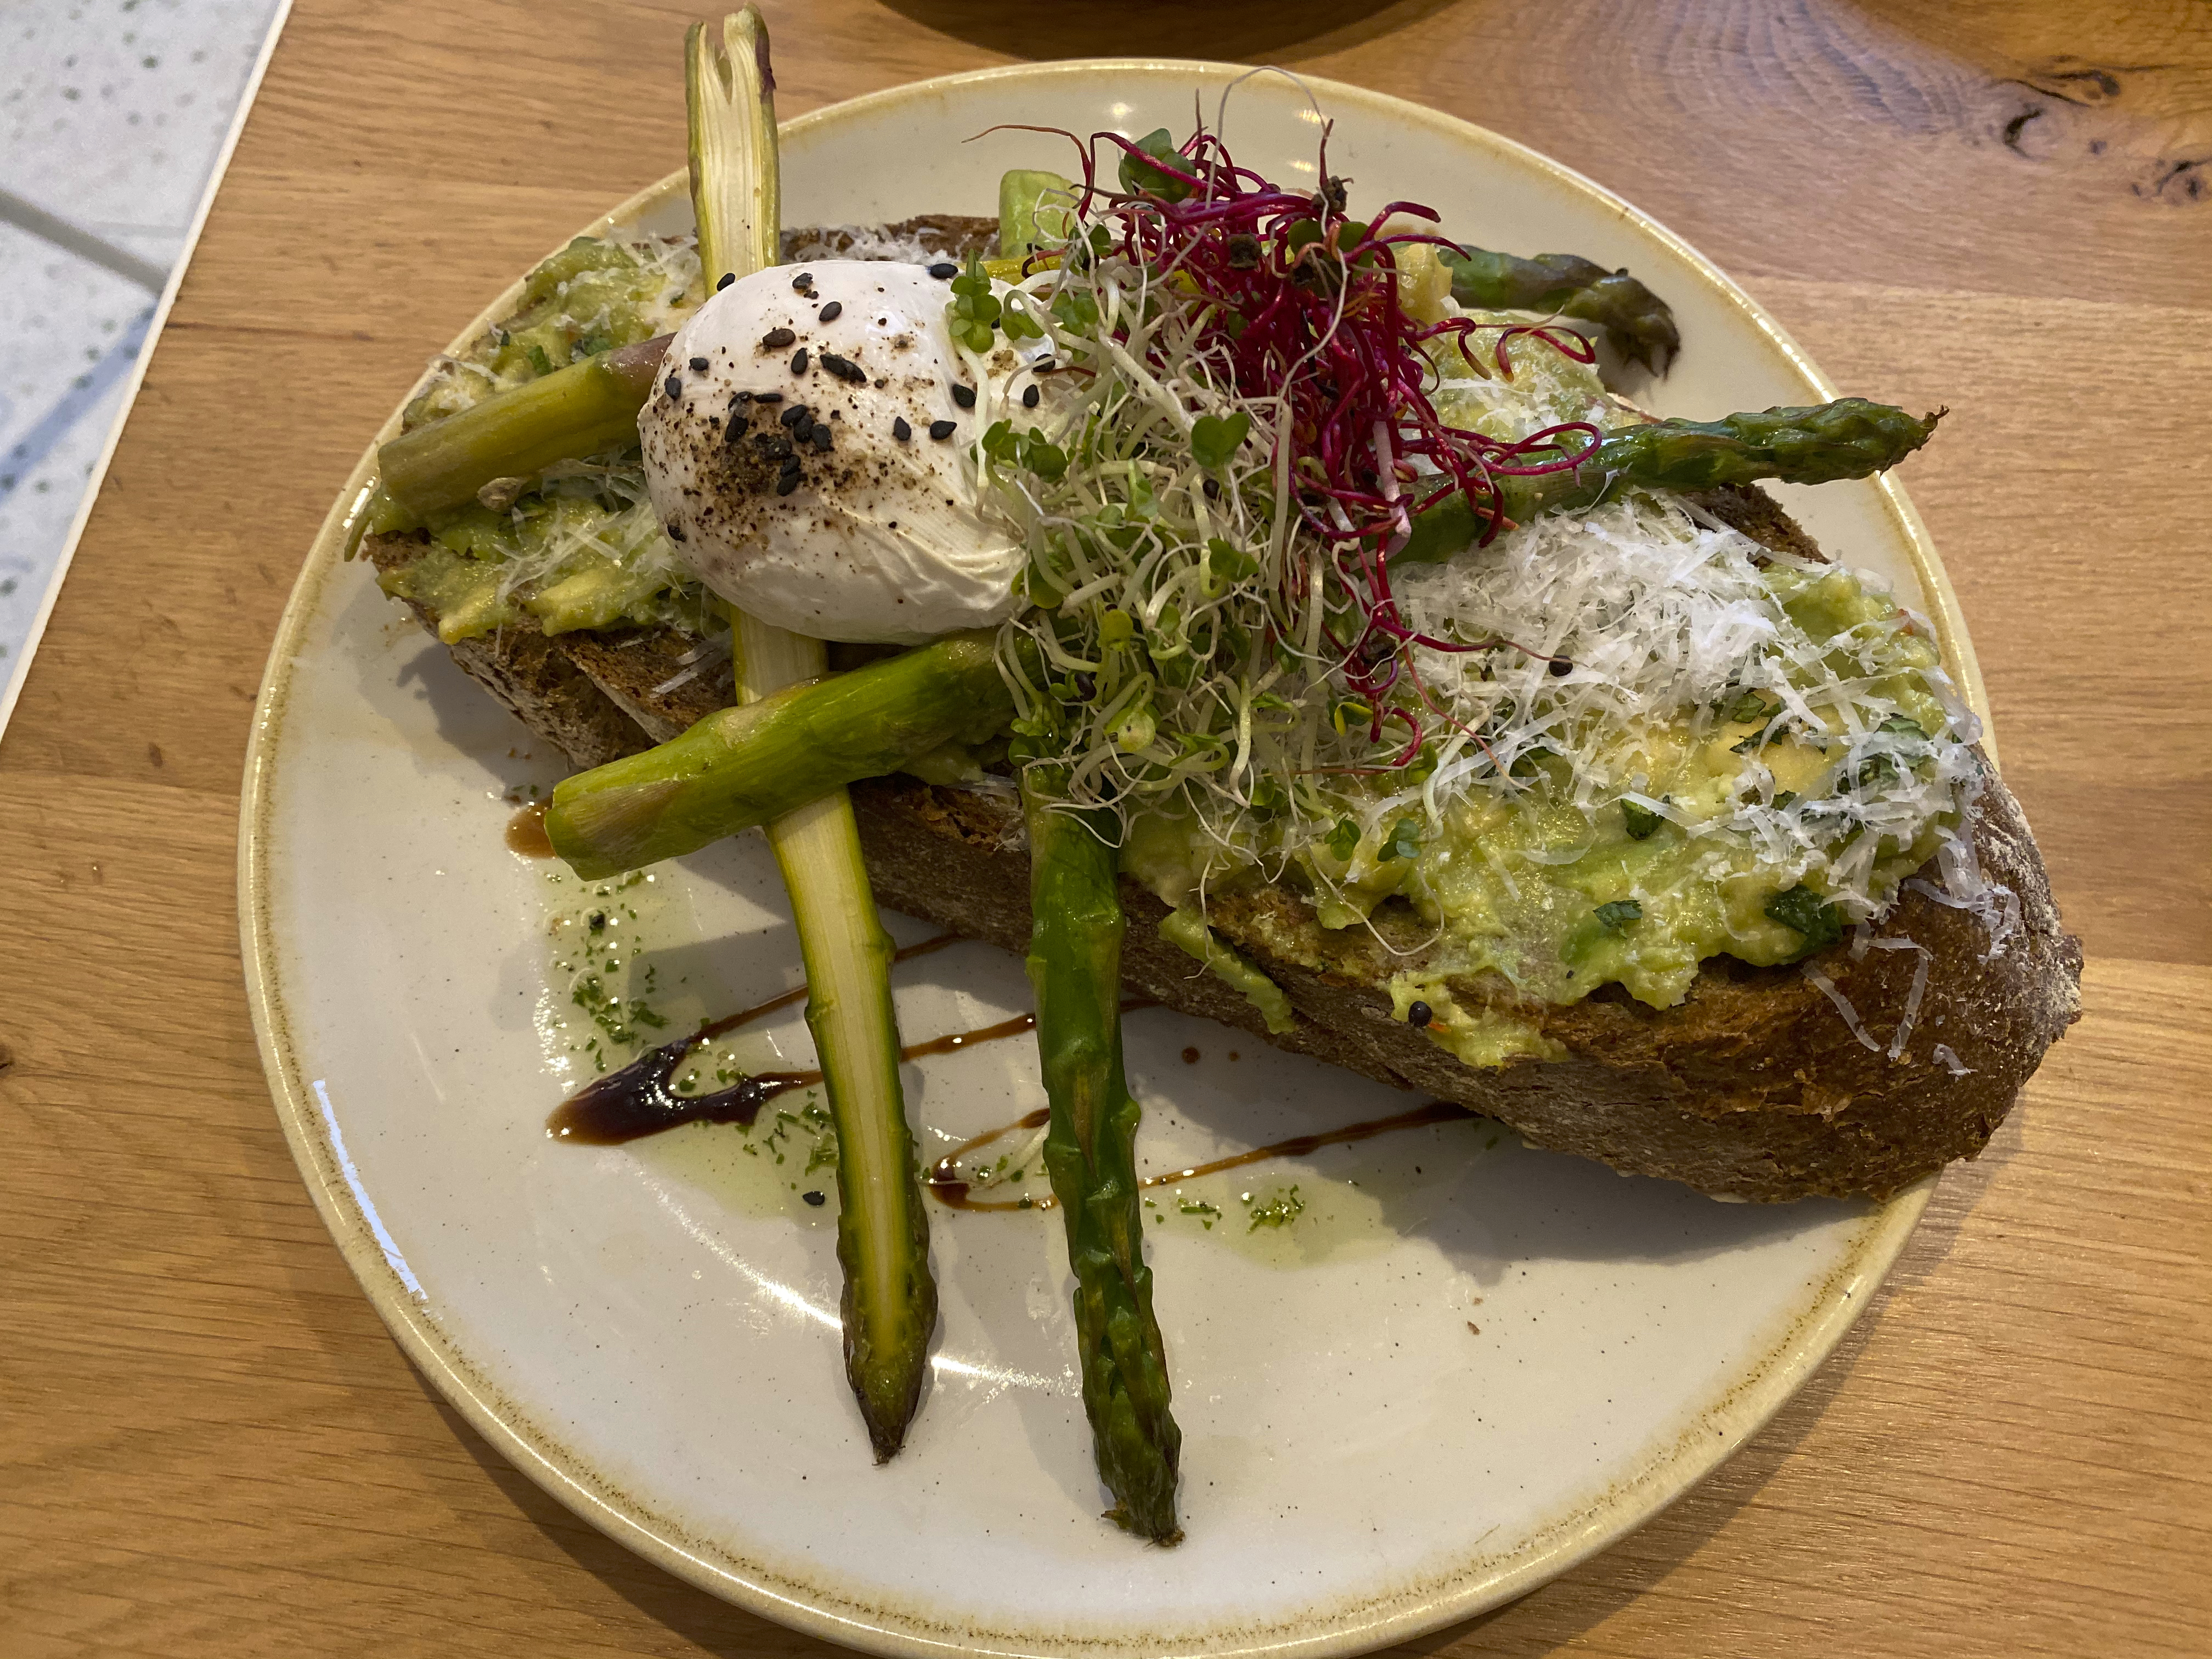 A photo of the classic (avocado salsa, green asparagus, Grana Padano cheese, mint, toast and a poached egg) at That's Toast, a cute little café restaurant in Bruges, Belgium. Photo Courtesy of FoodWaterShoes